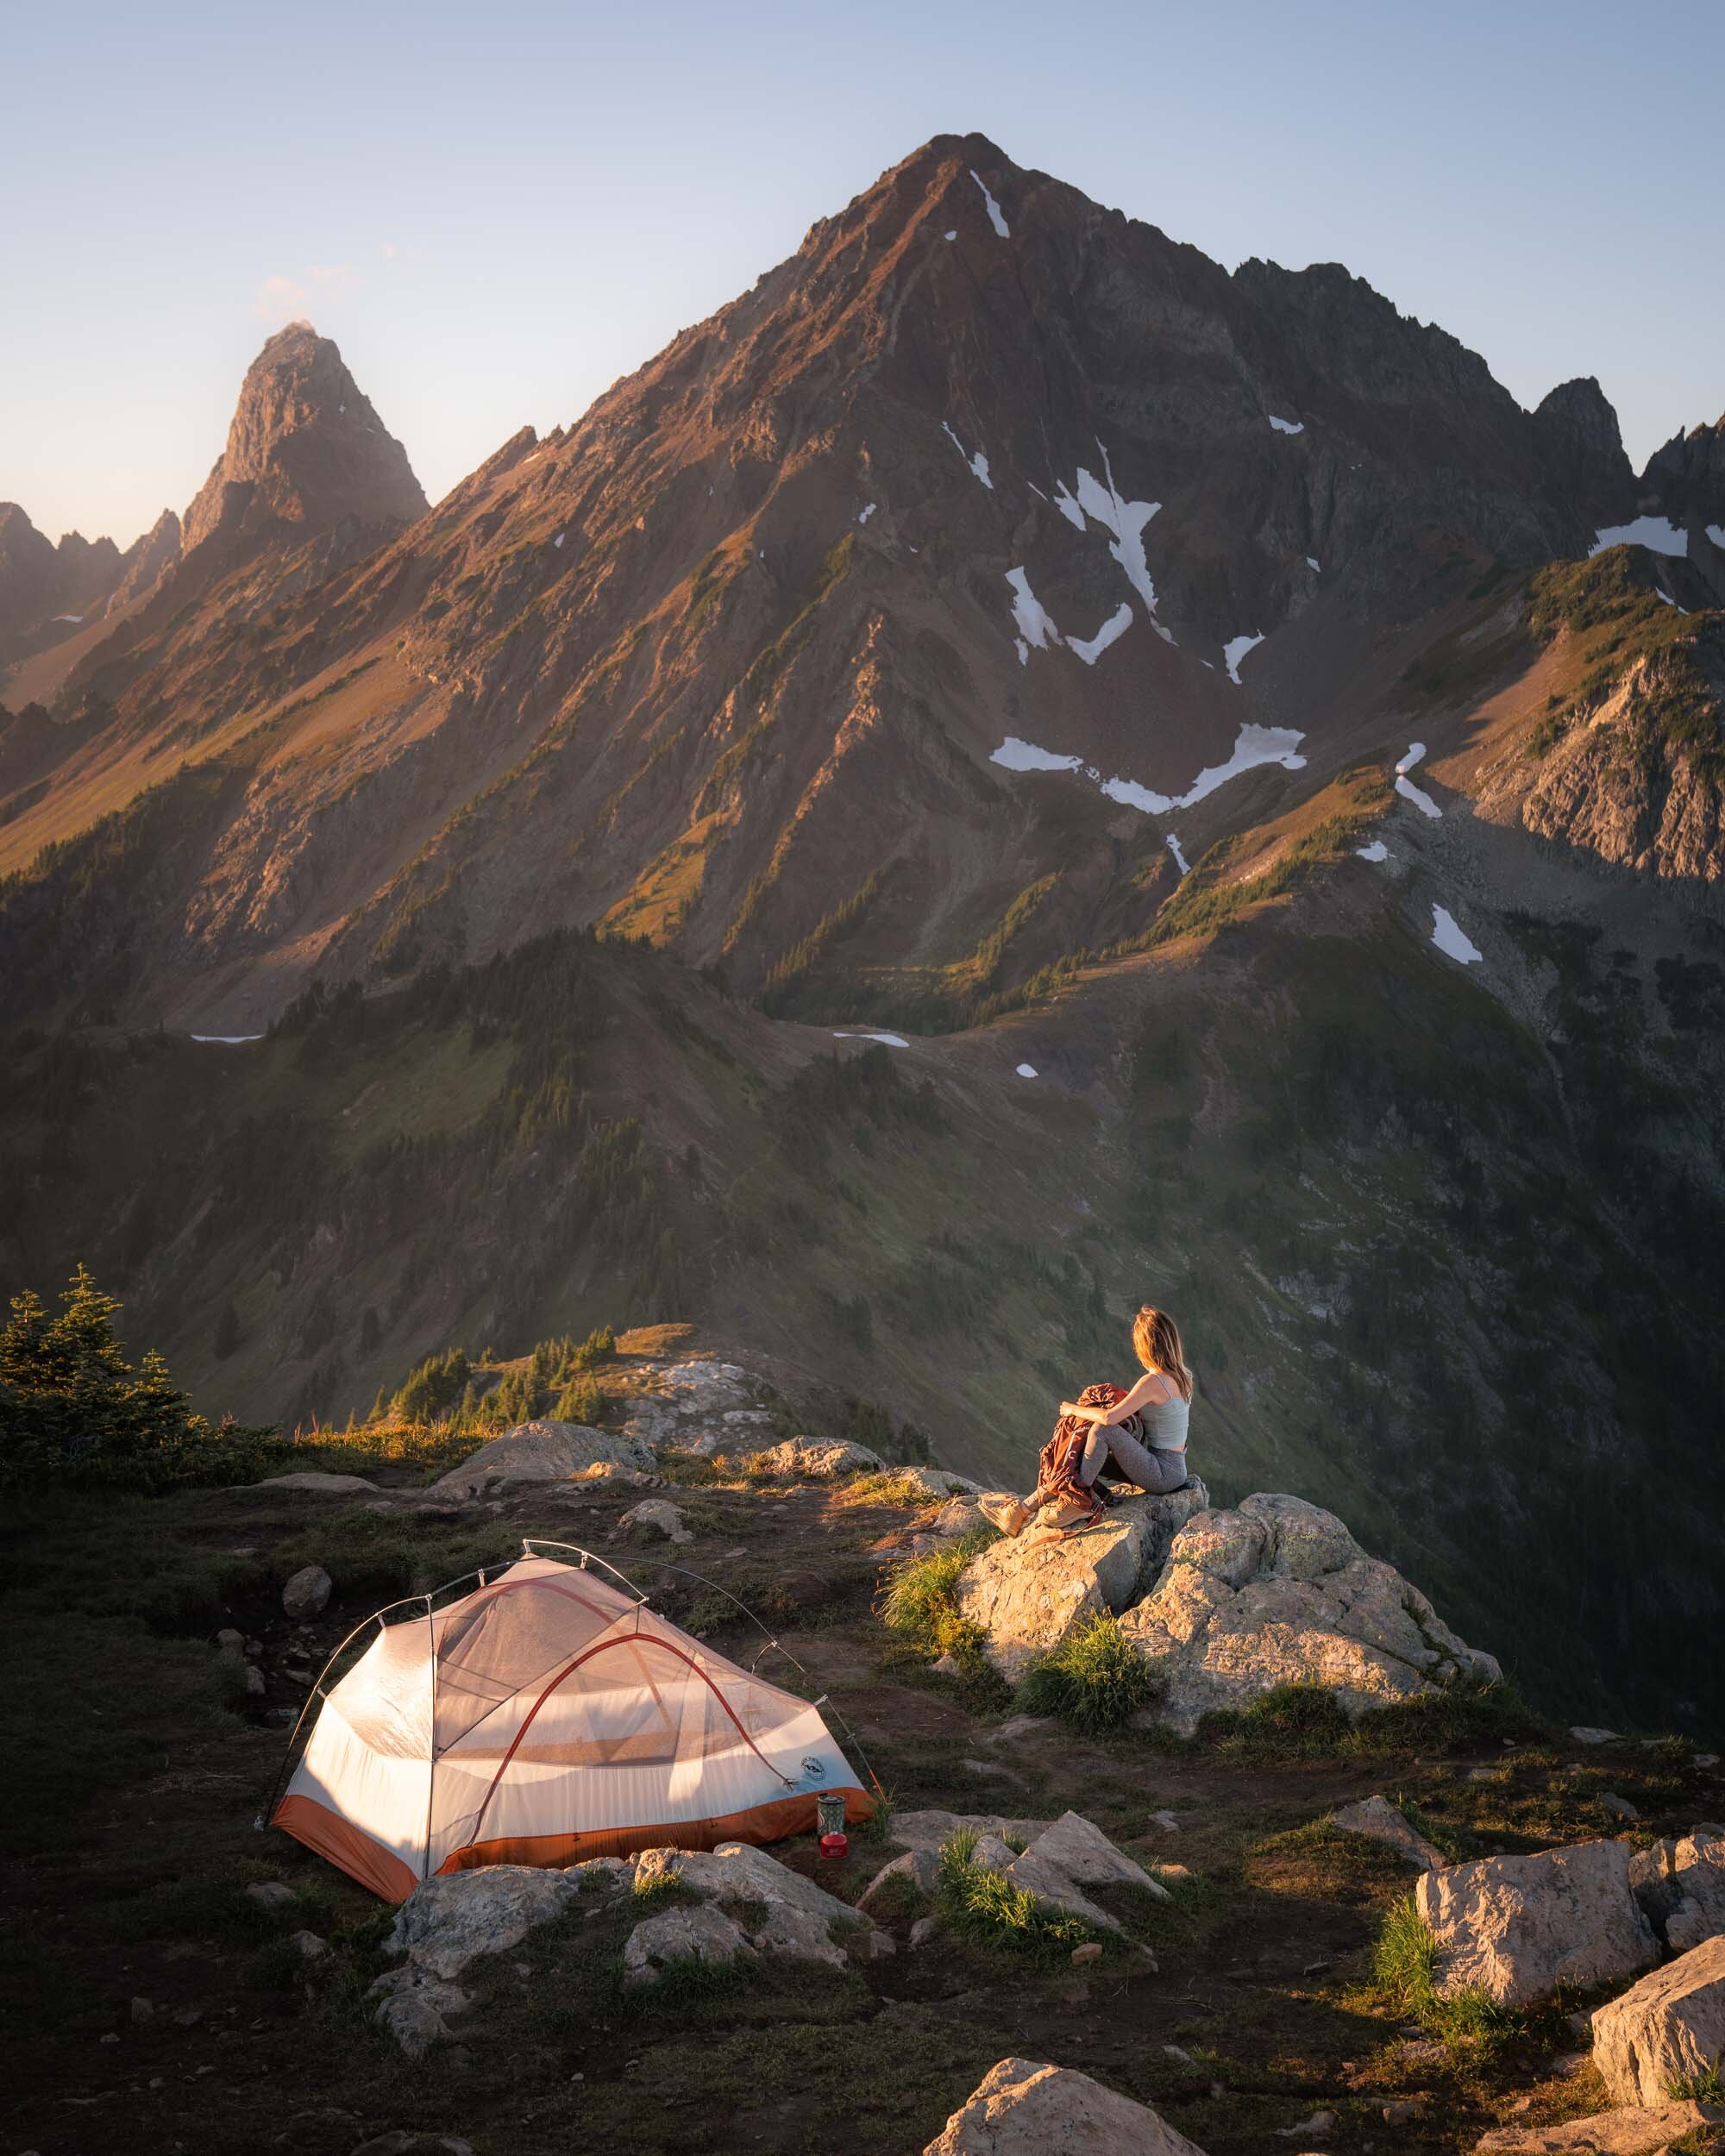 Spending the night in the North Cascades, WA. Tent:  Big Agnes Copper Spur HV UL2 Tent .